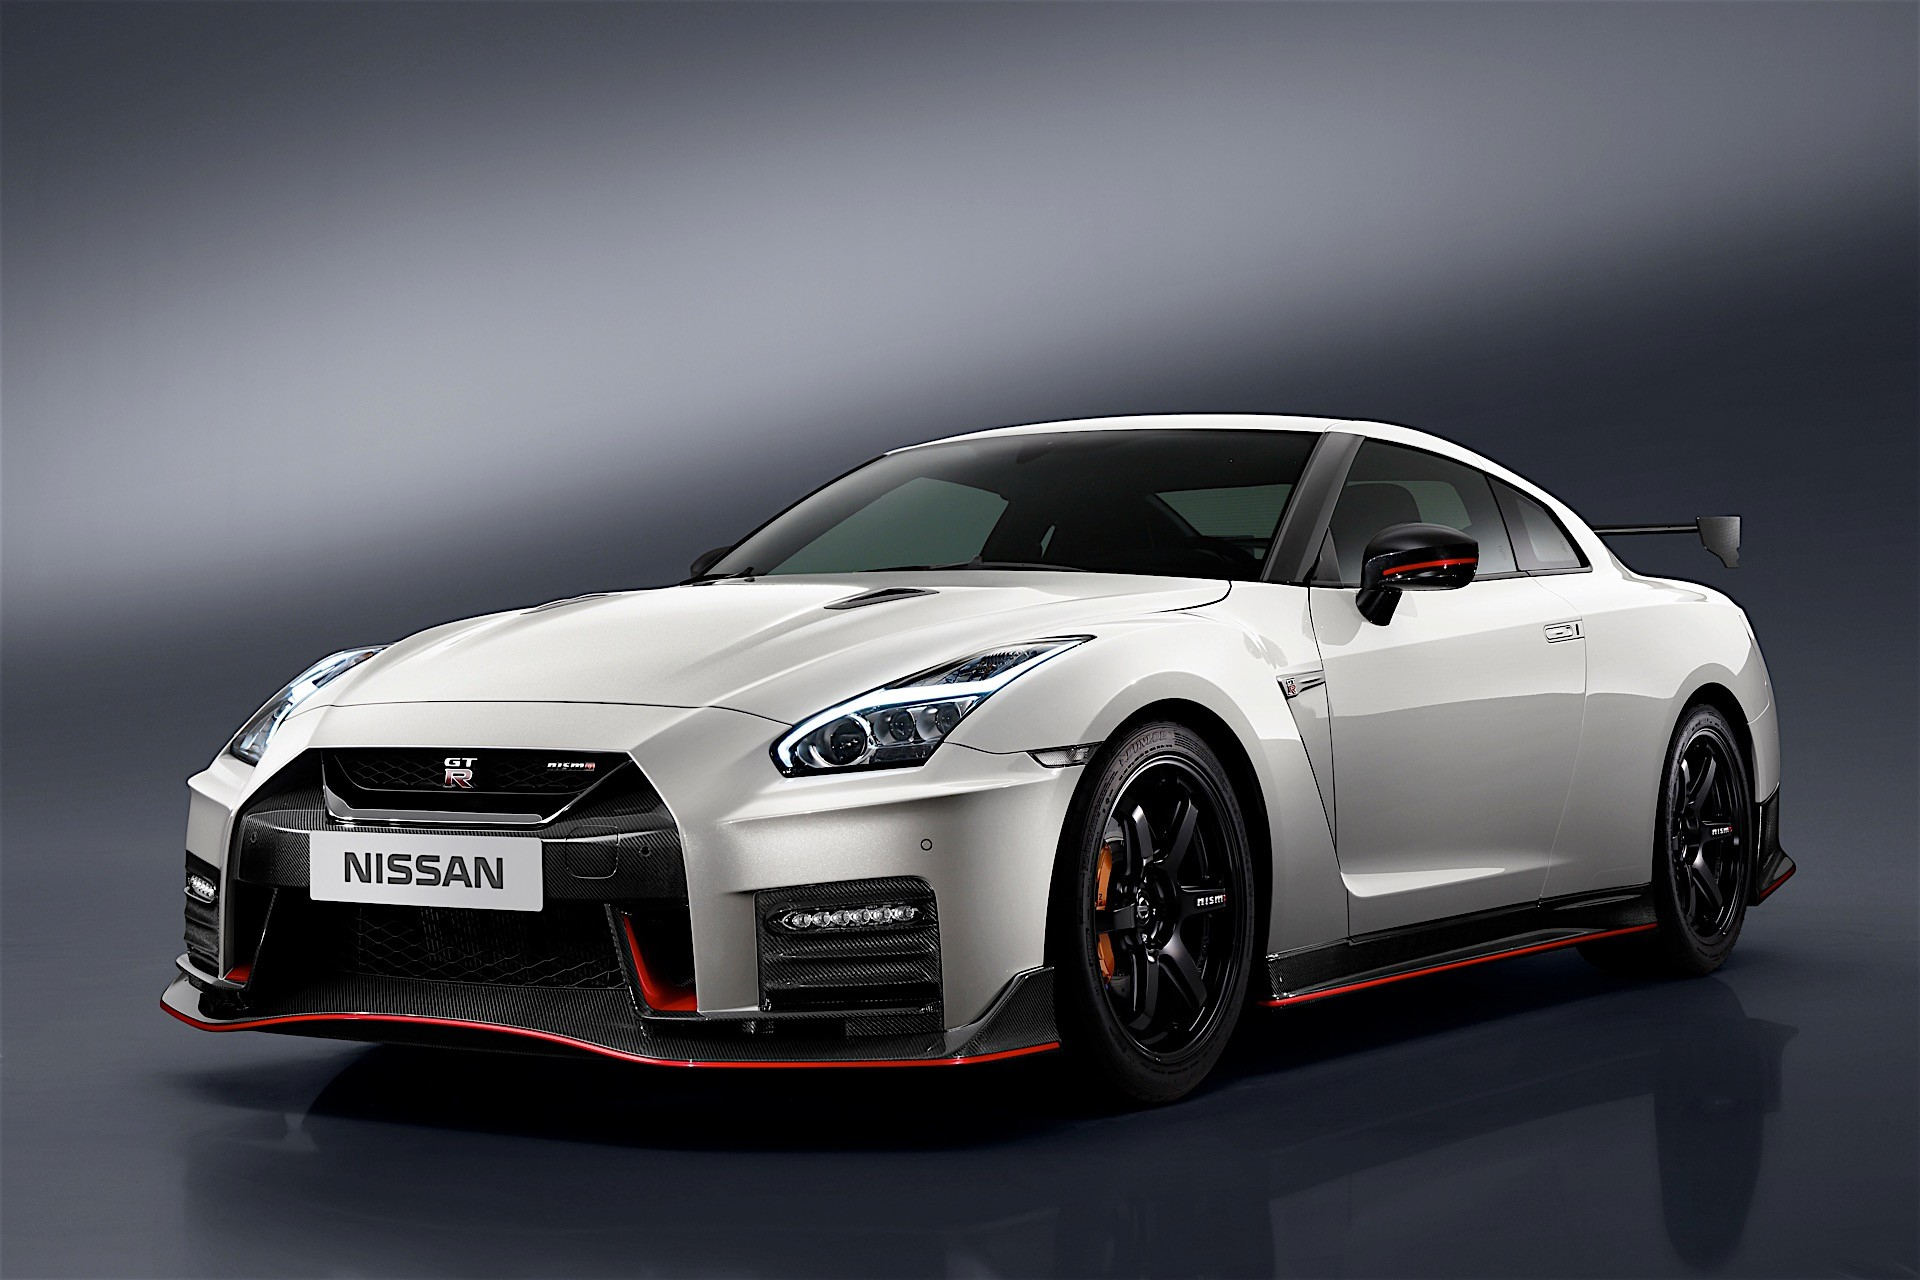 nissan unveils 2017 gt r nismo at nurburgring comes with 600 hp autoevolution. Black Bedroom Furniture Sets. Home Design Ideas